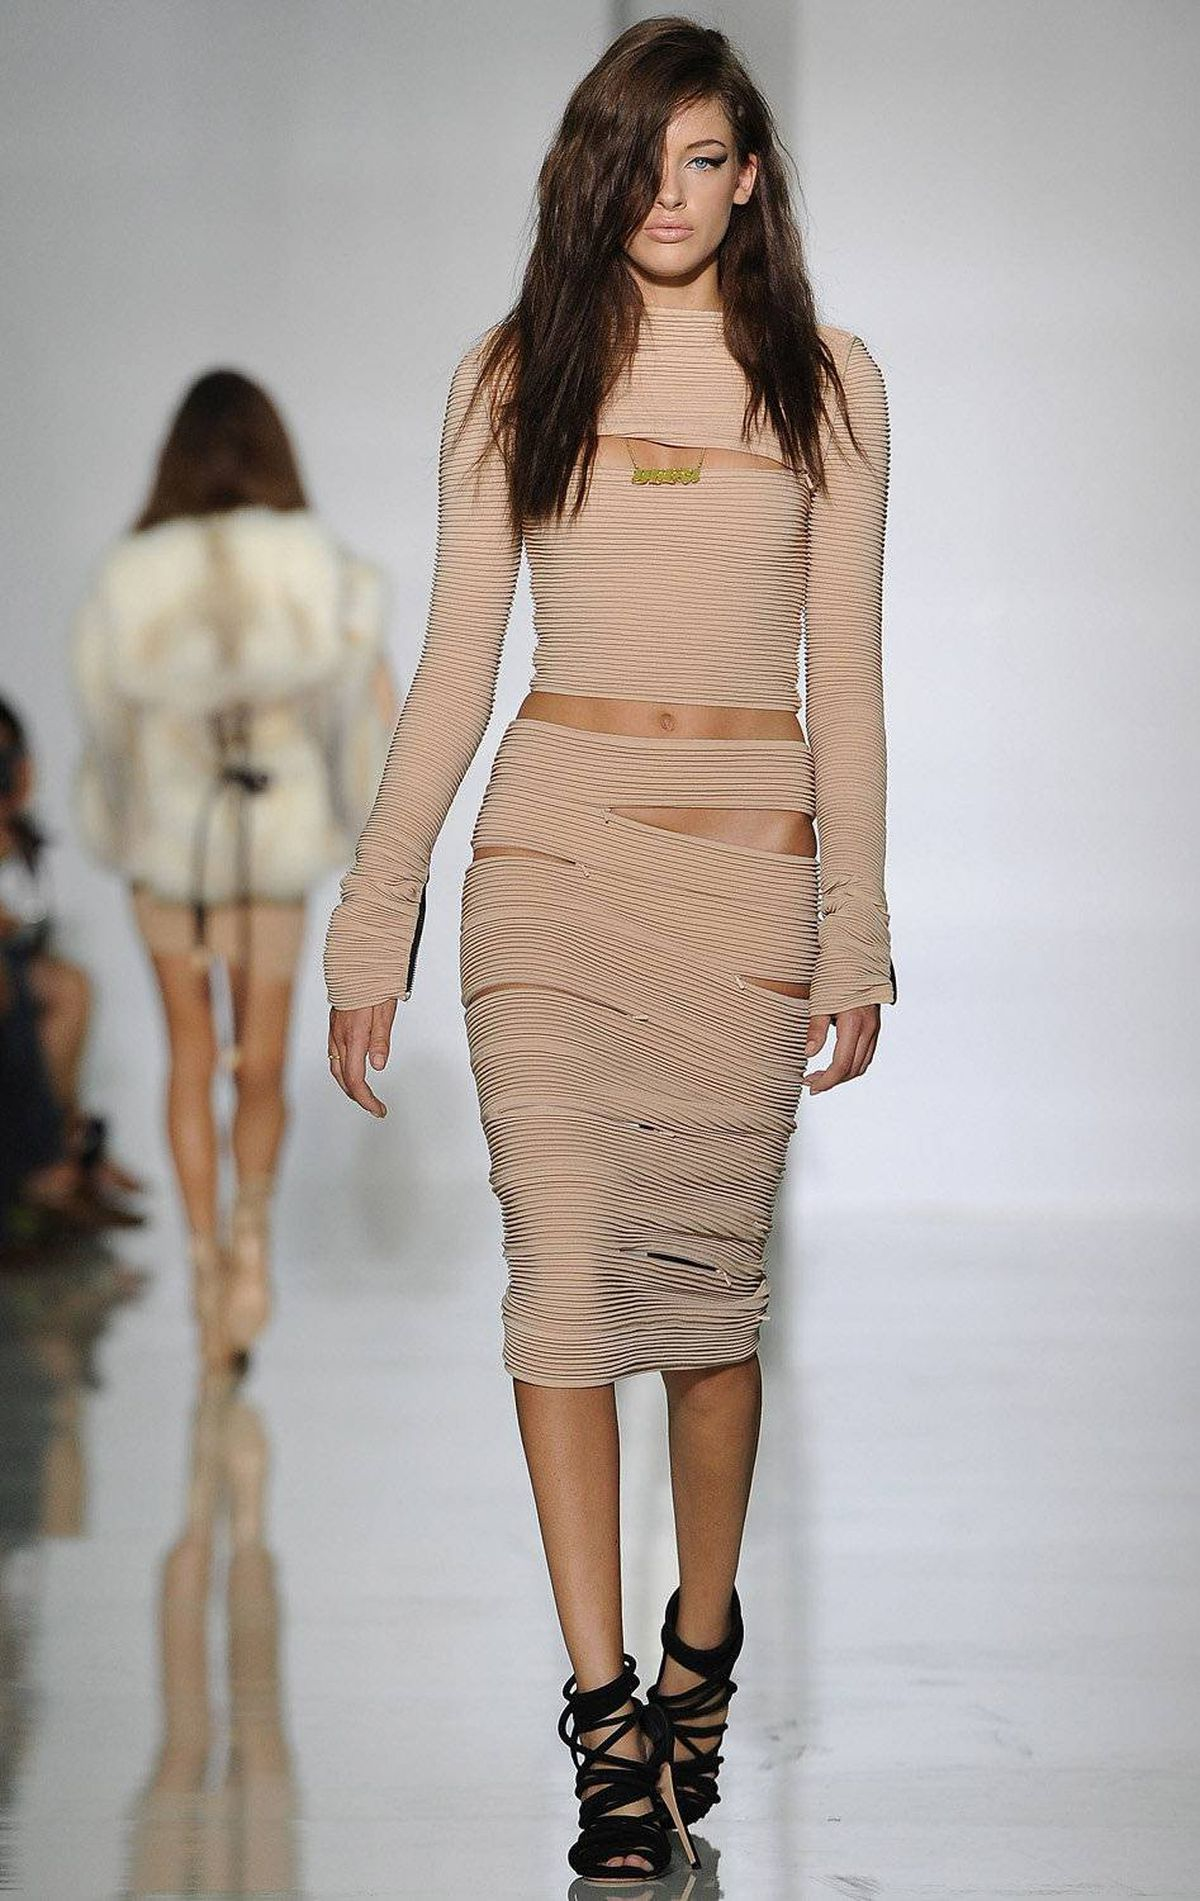 A model walks the runway during the Dw by Kanye West ready-to-wear spring/summer 2012 show during Paris Fashion Week at Lycee Henri IV on October 1, 2011 in Paris.